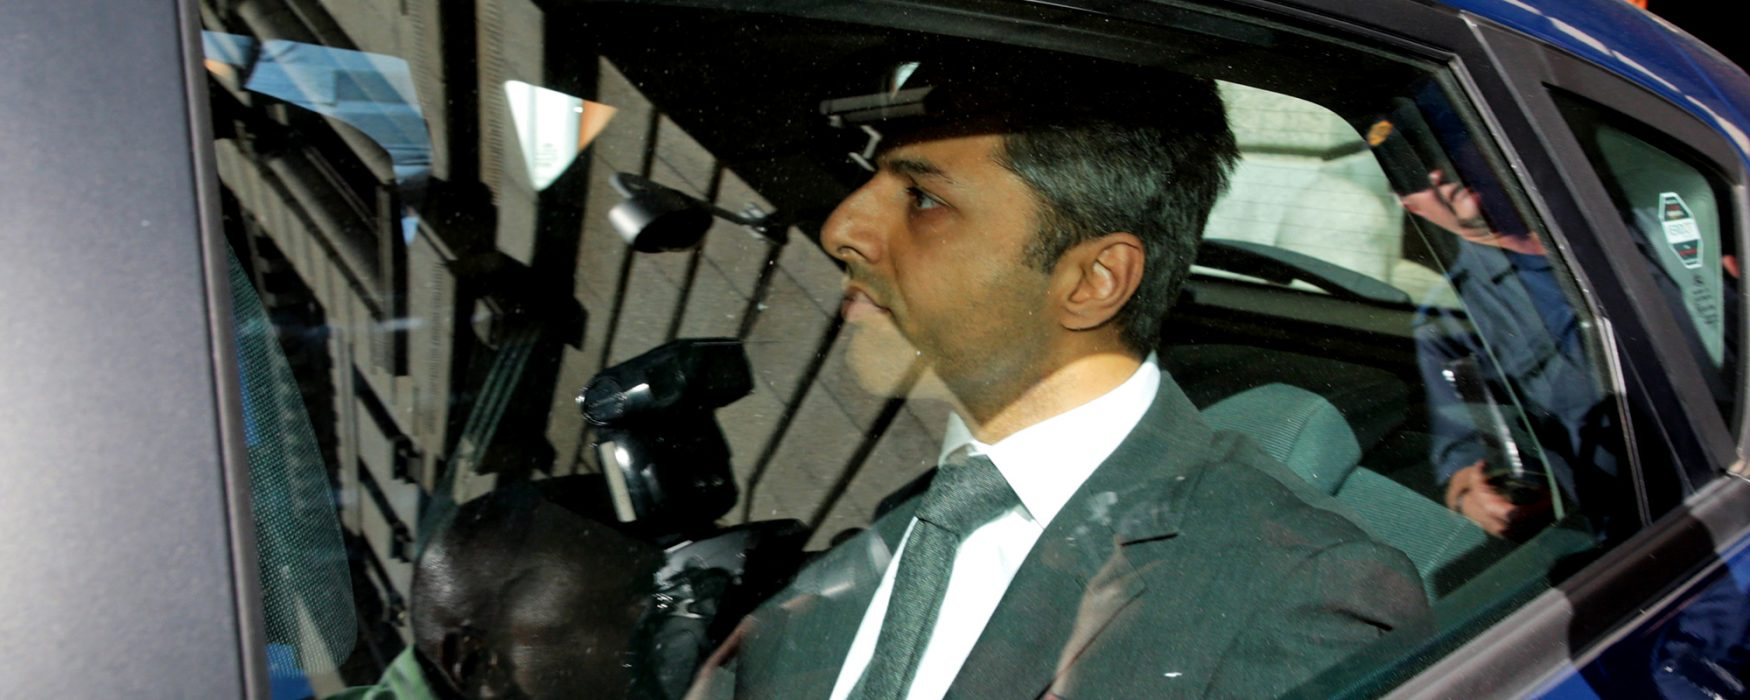 enca shrien dewani trial merlin backpack